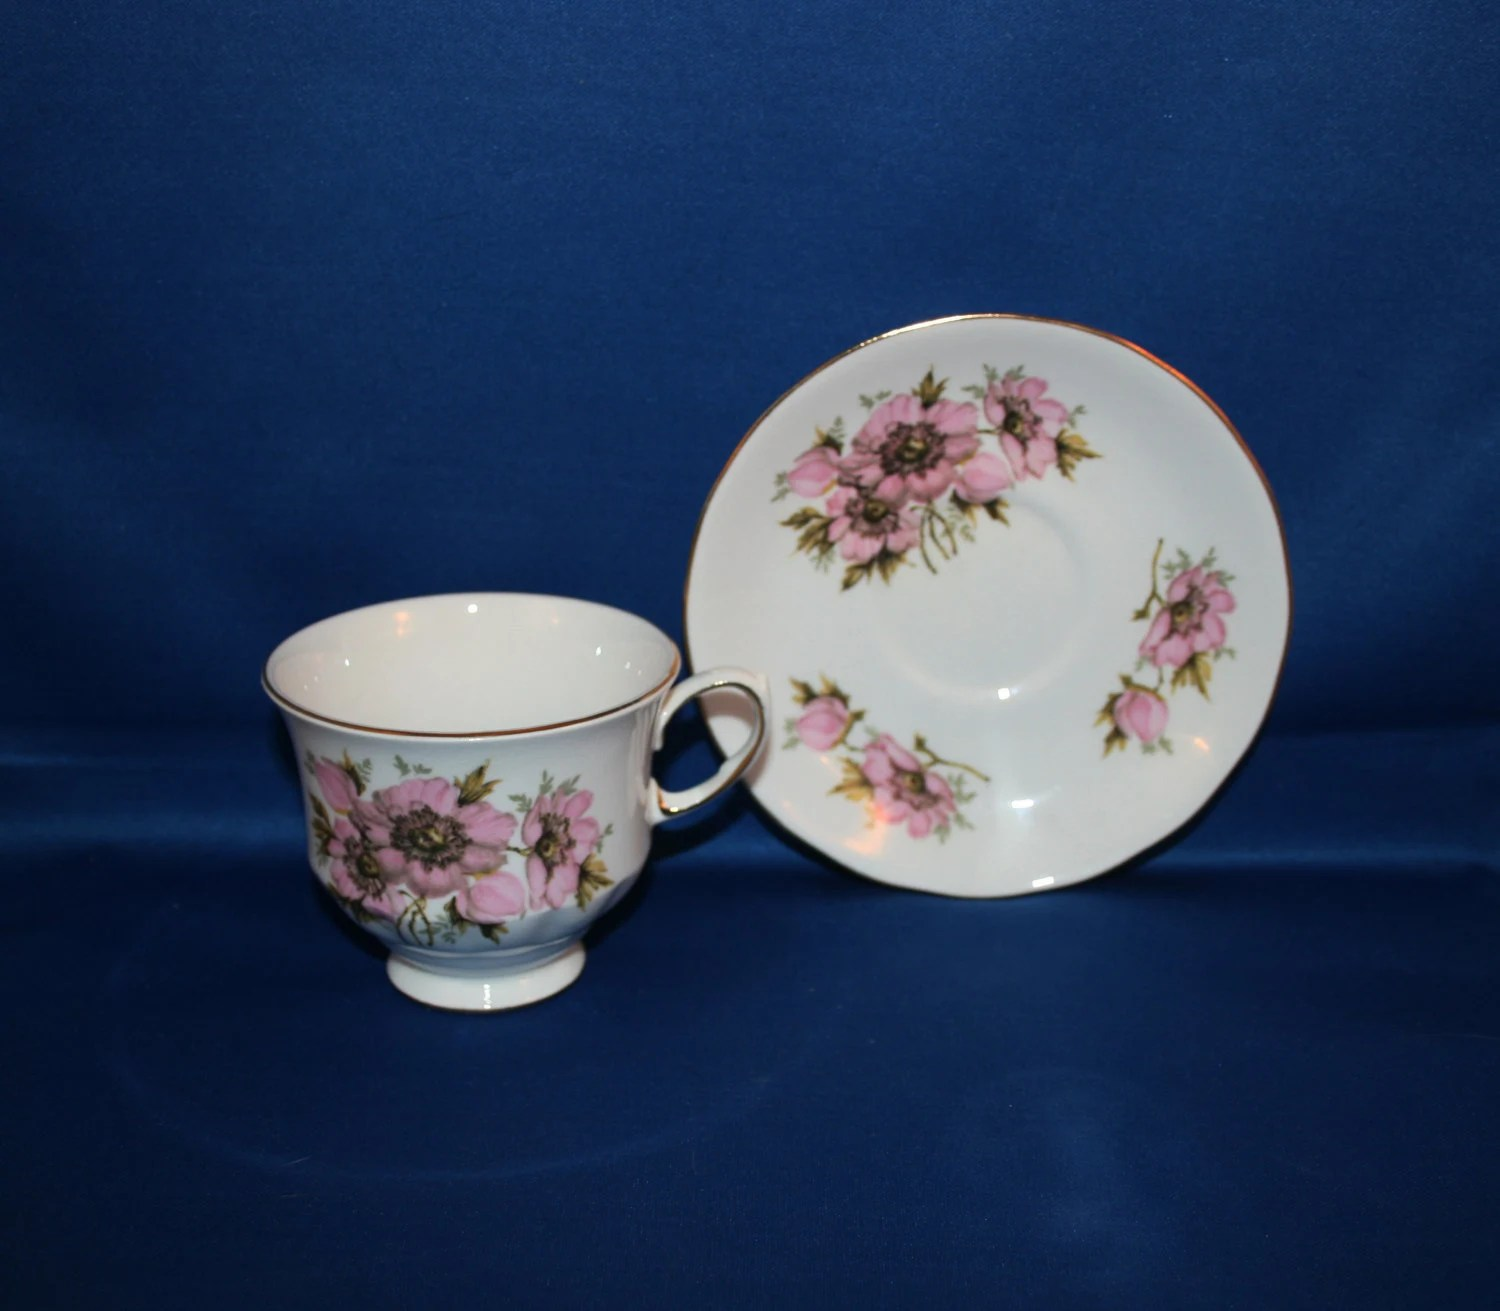 ridgway china made in england